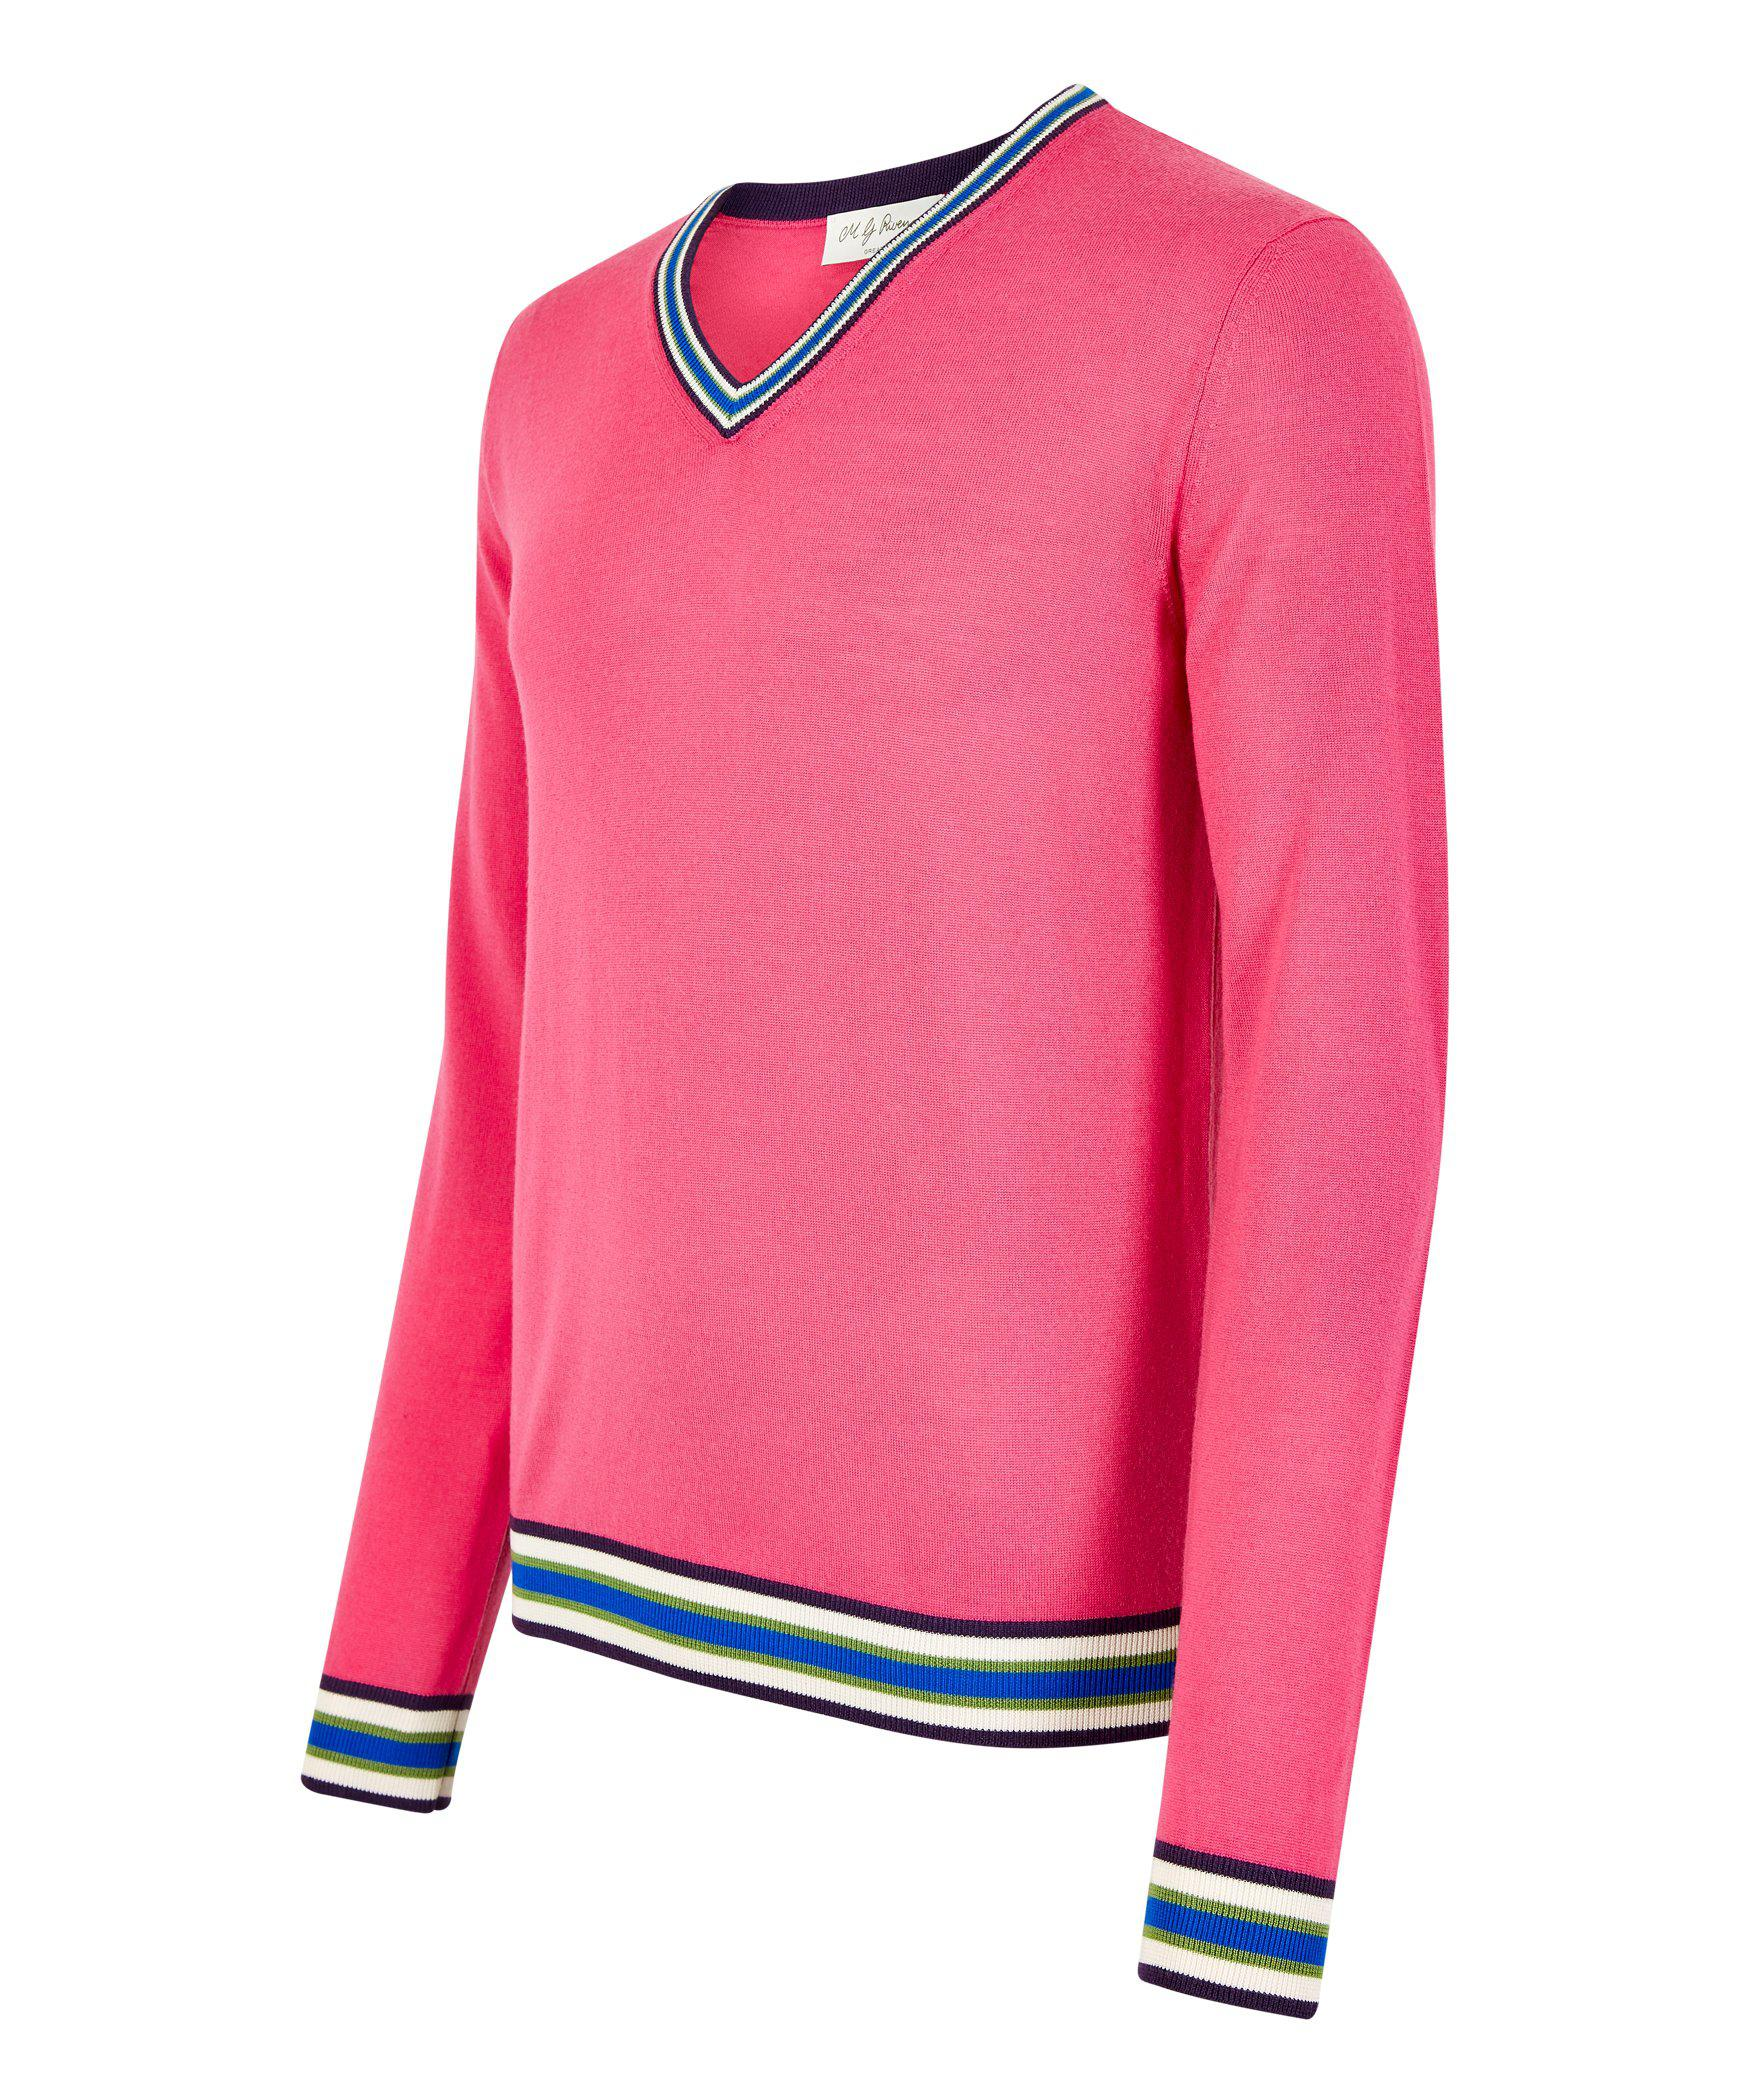 Fuchsia Pink Merino V-Neck Jumper - MG Rivers Jumpers